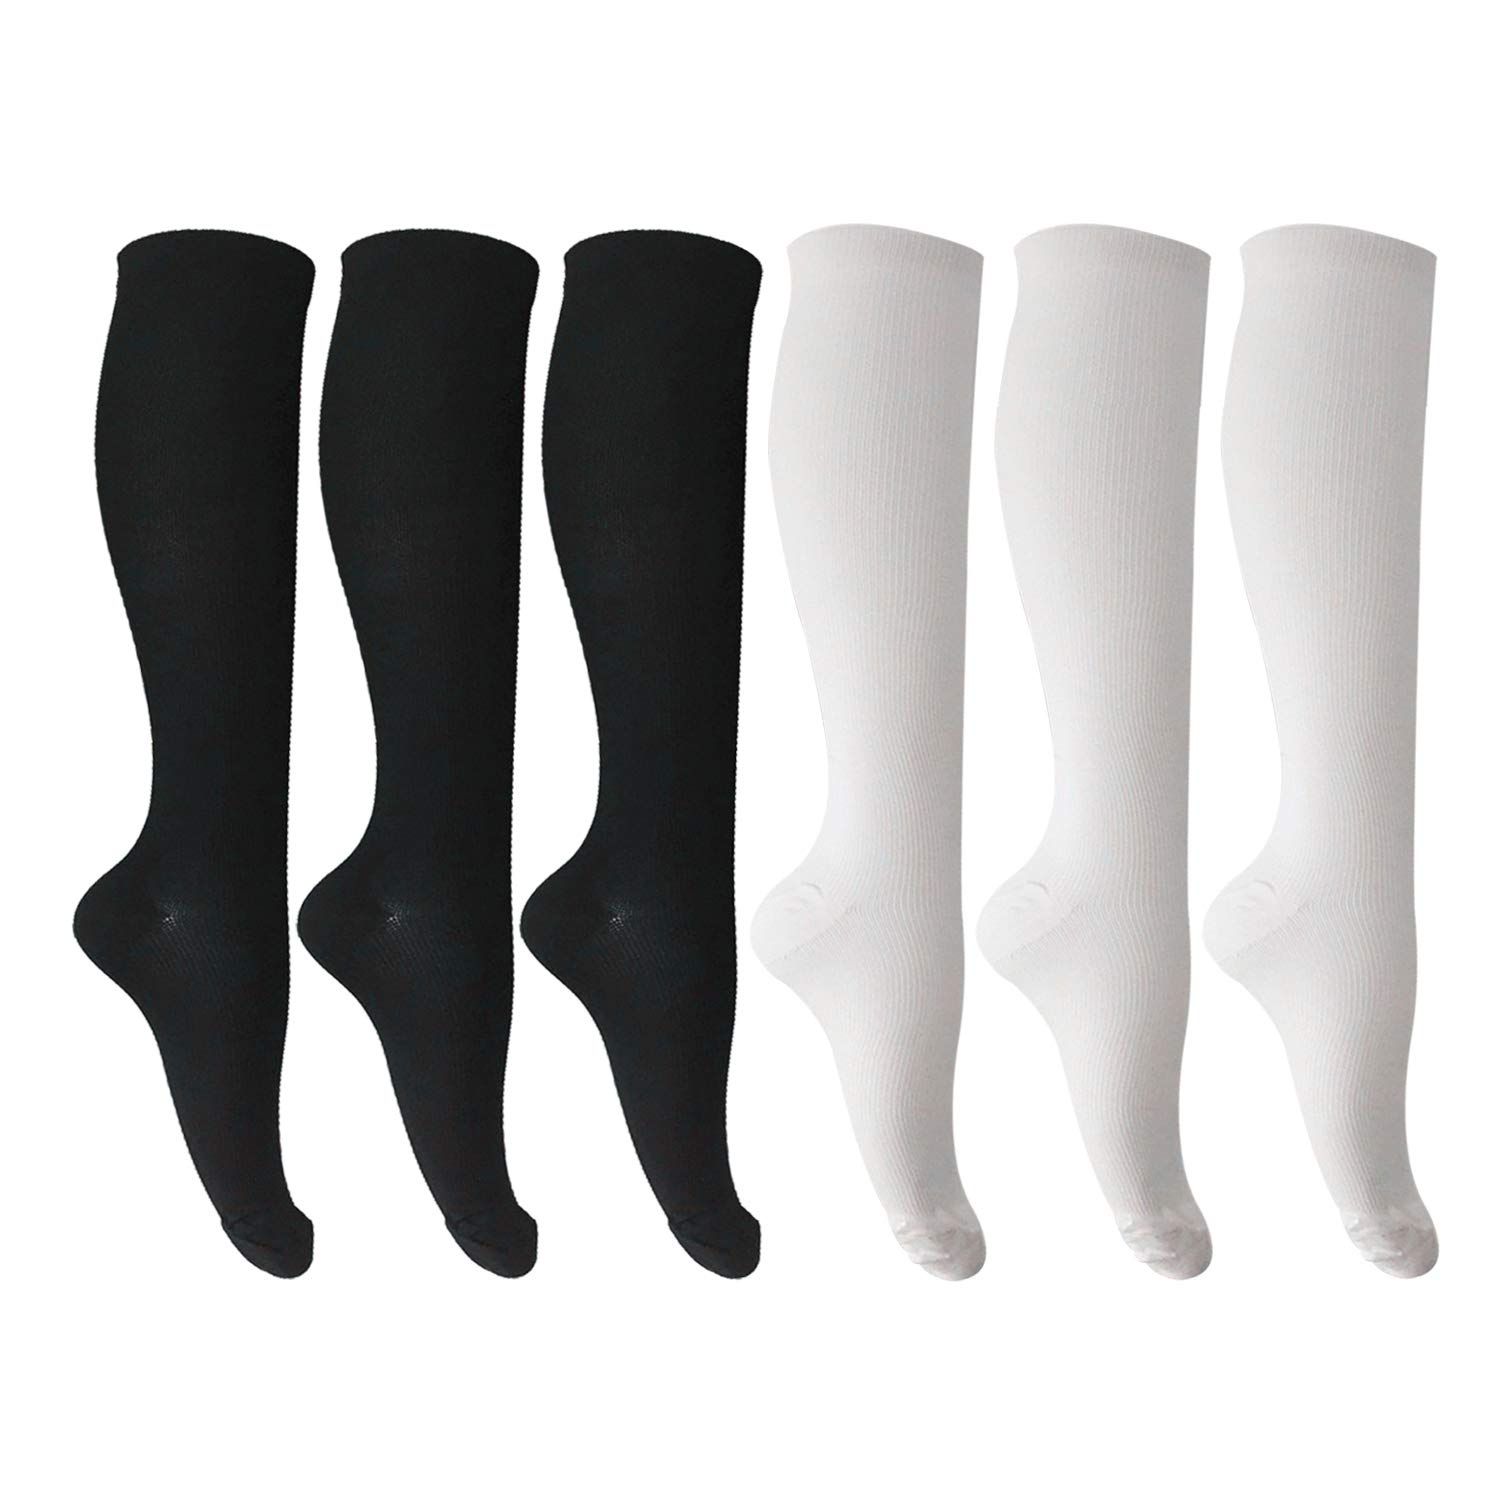 64fb3cd19fa471 Our knee high compression socks with upgraded nylon material which is  perfectly breathable, swift moisture-wicking qualities will shield against  the ...